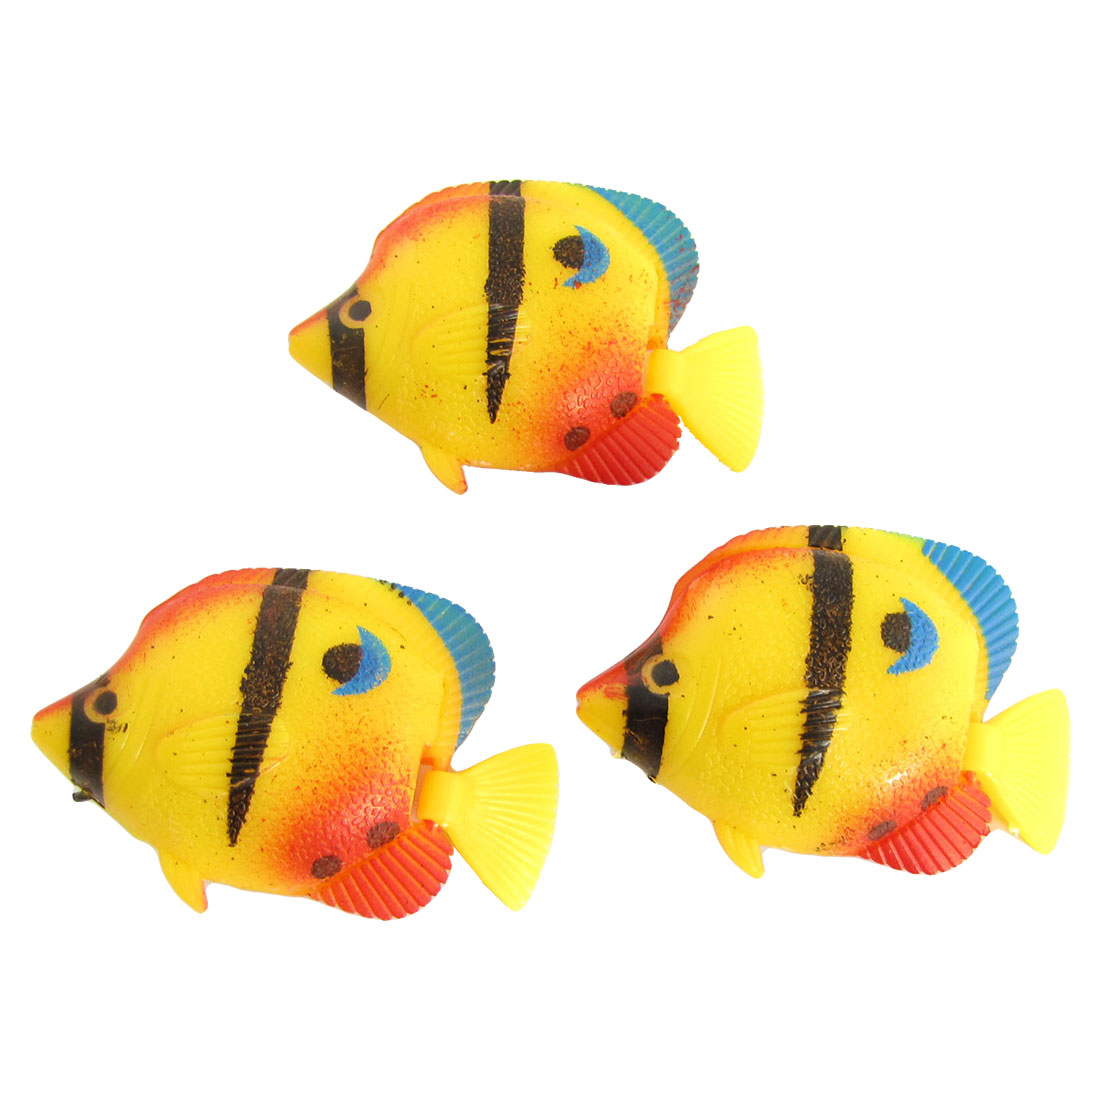 3 Pcs Manmade Wiggling Tail Floating Tropical Fish Aquarium Ornament